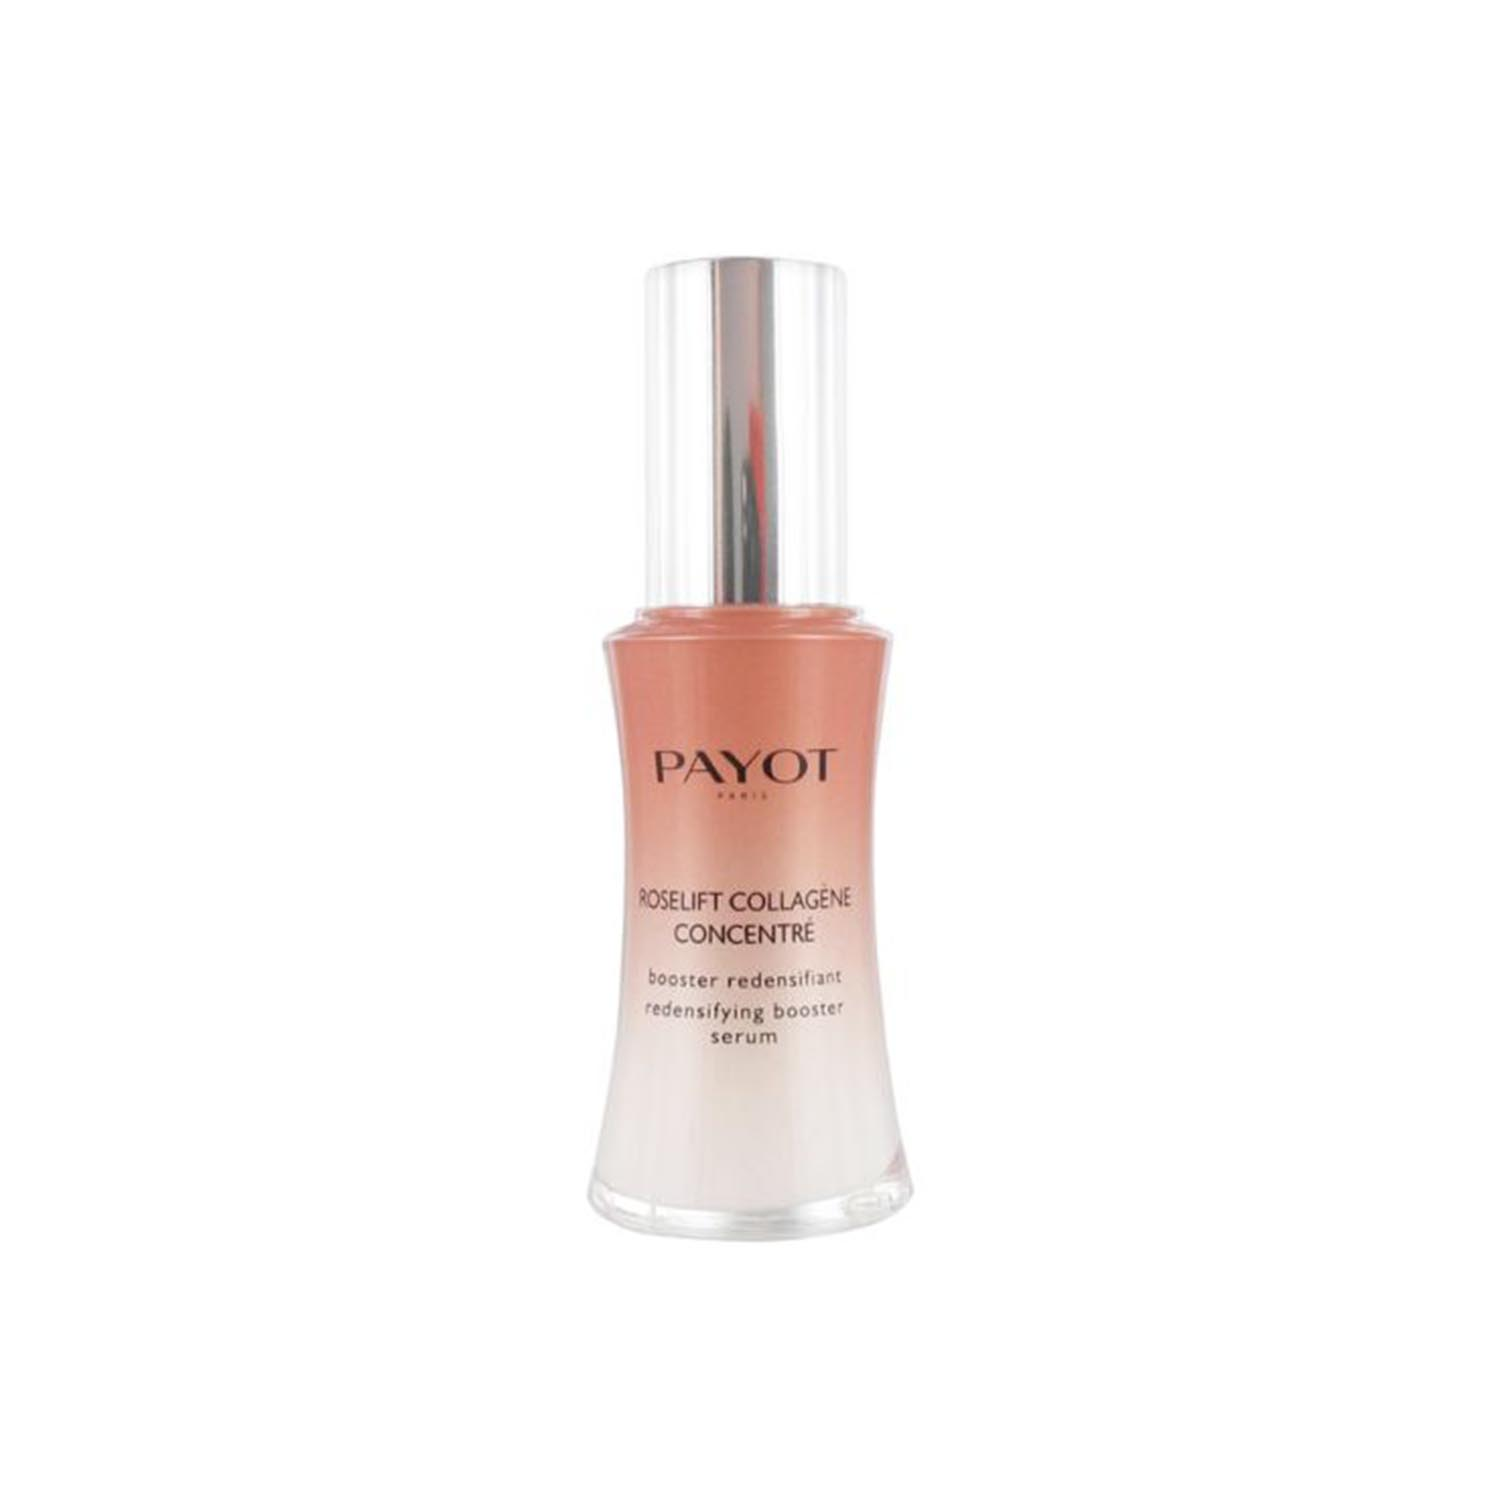 Payot roselift collagene concentre booster serum 30ml